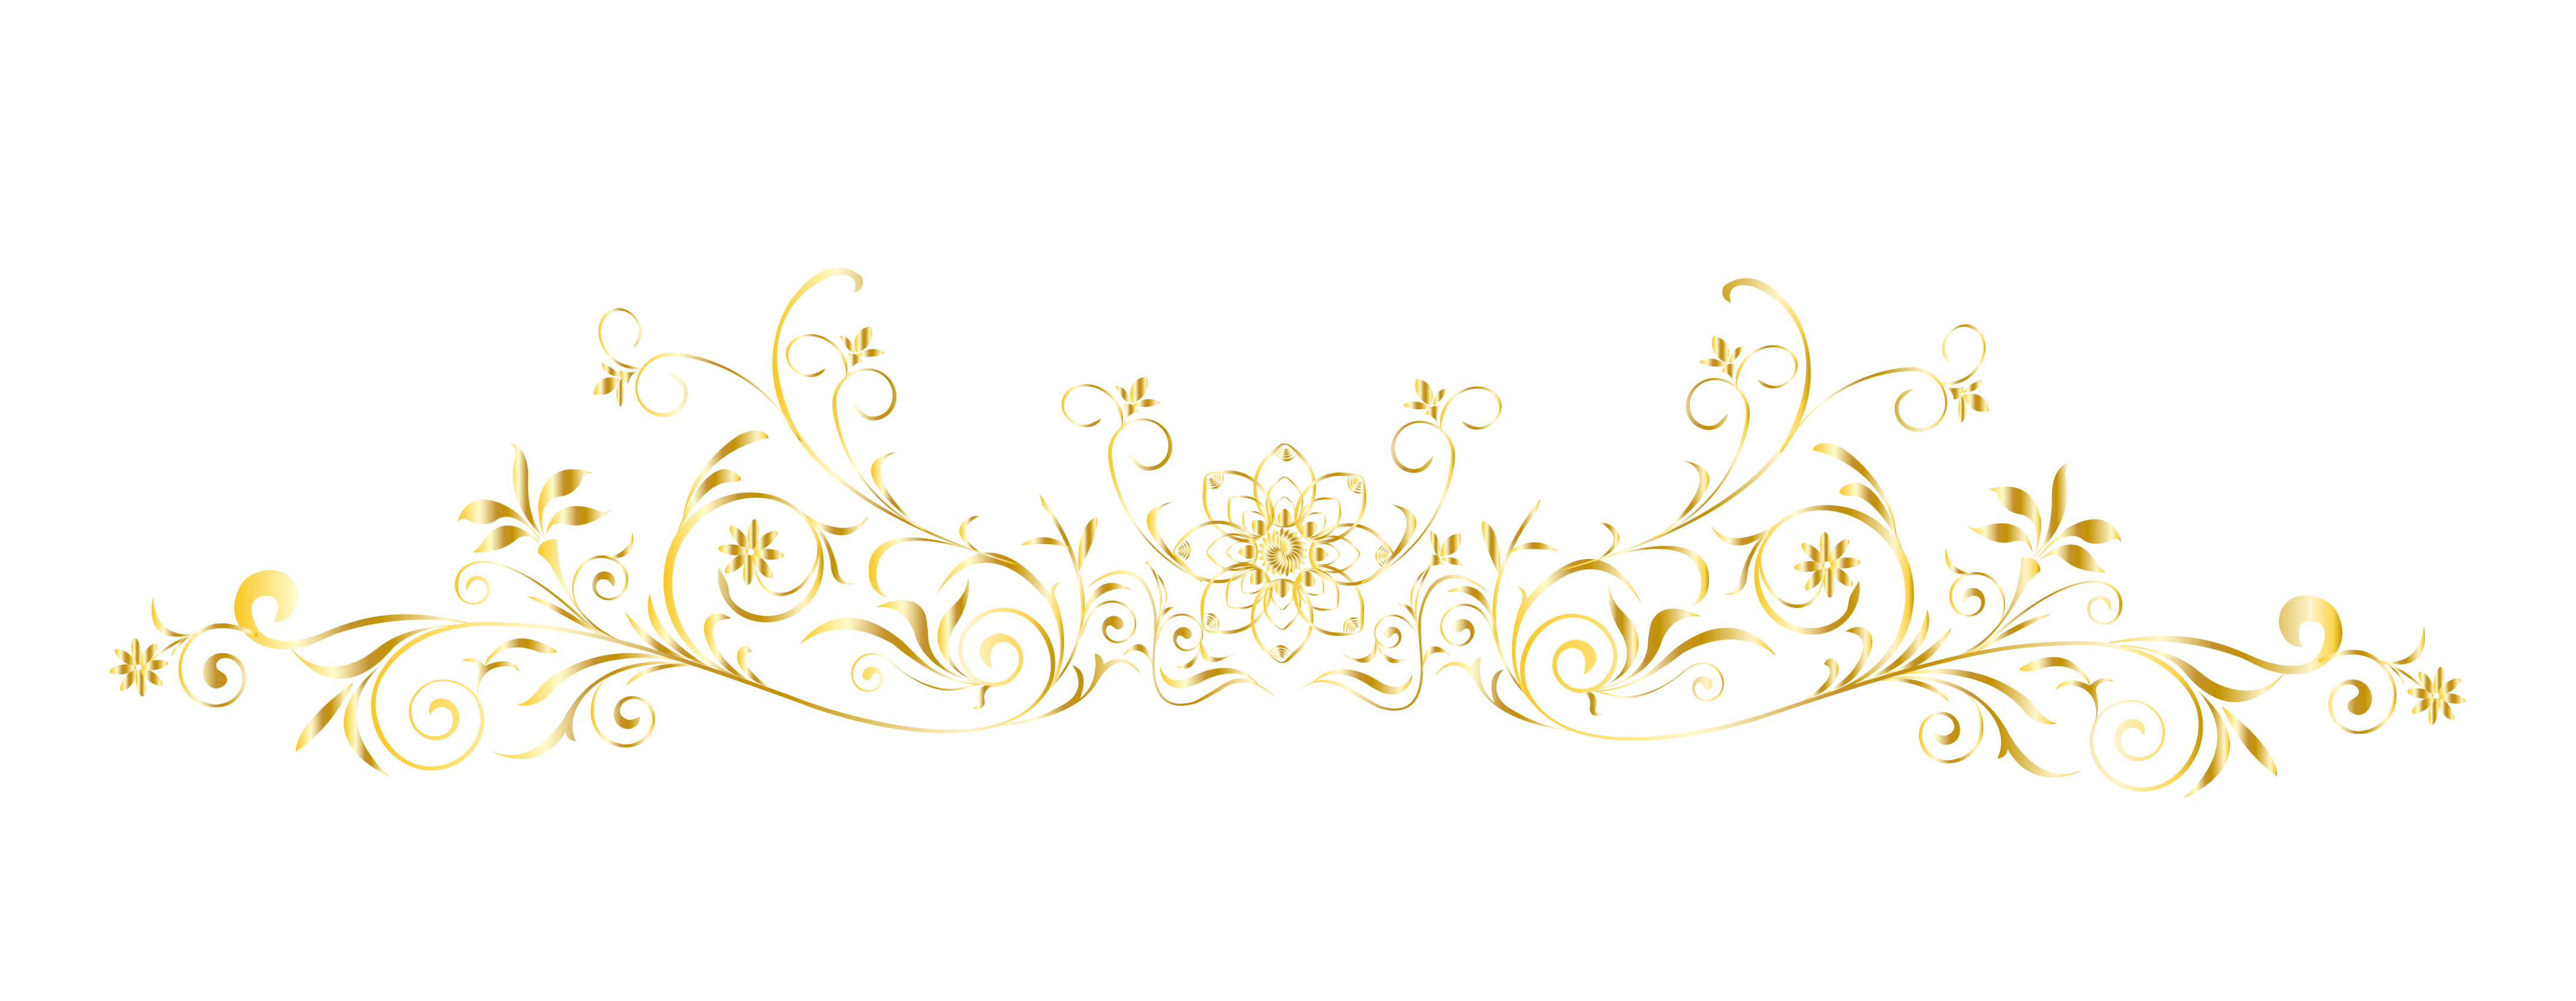 Floral lines png. White pattern european gold